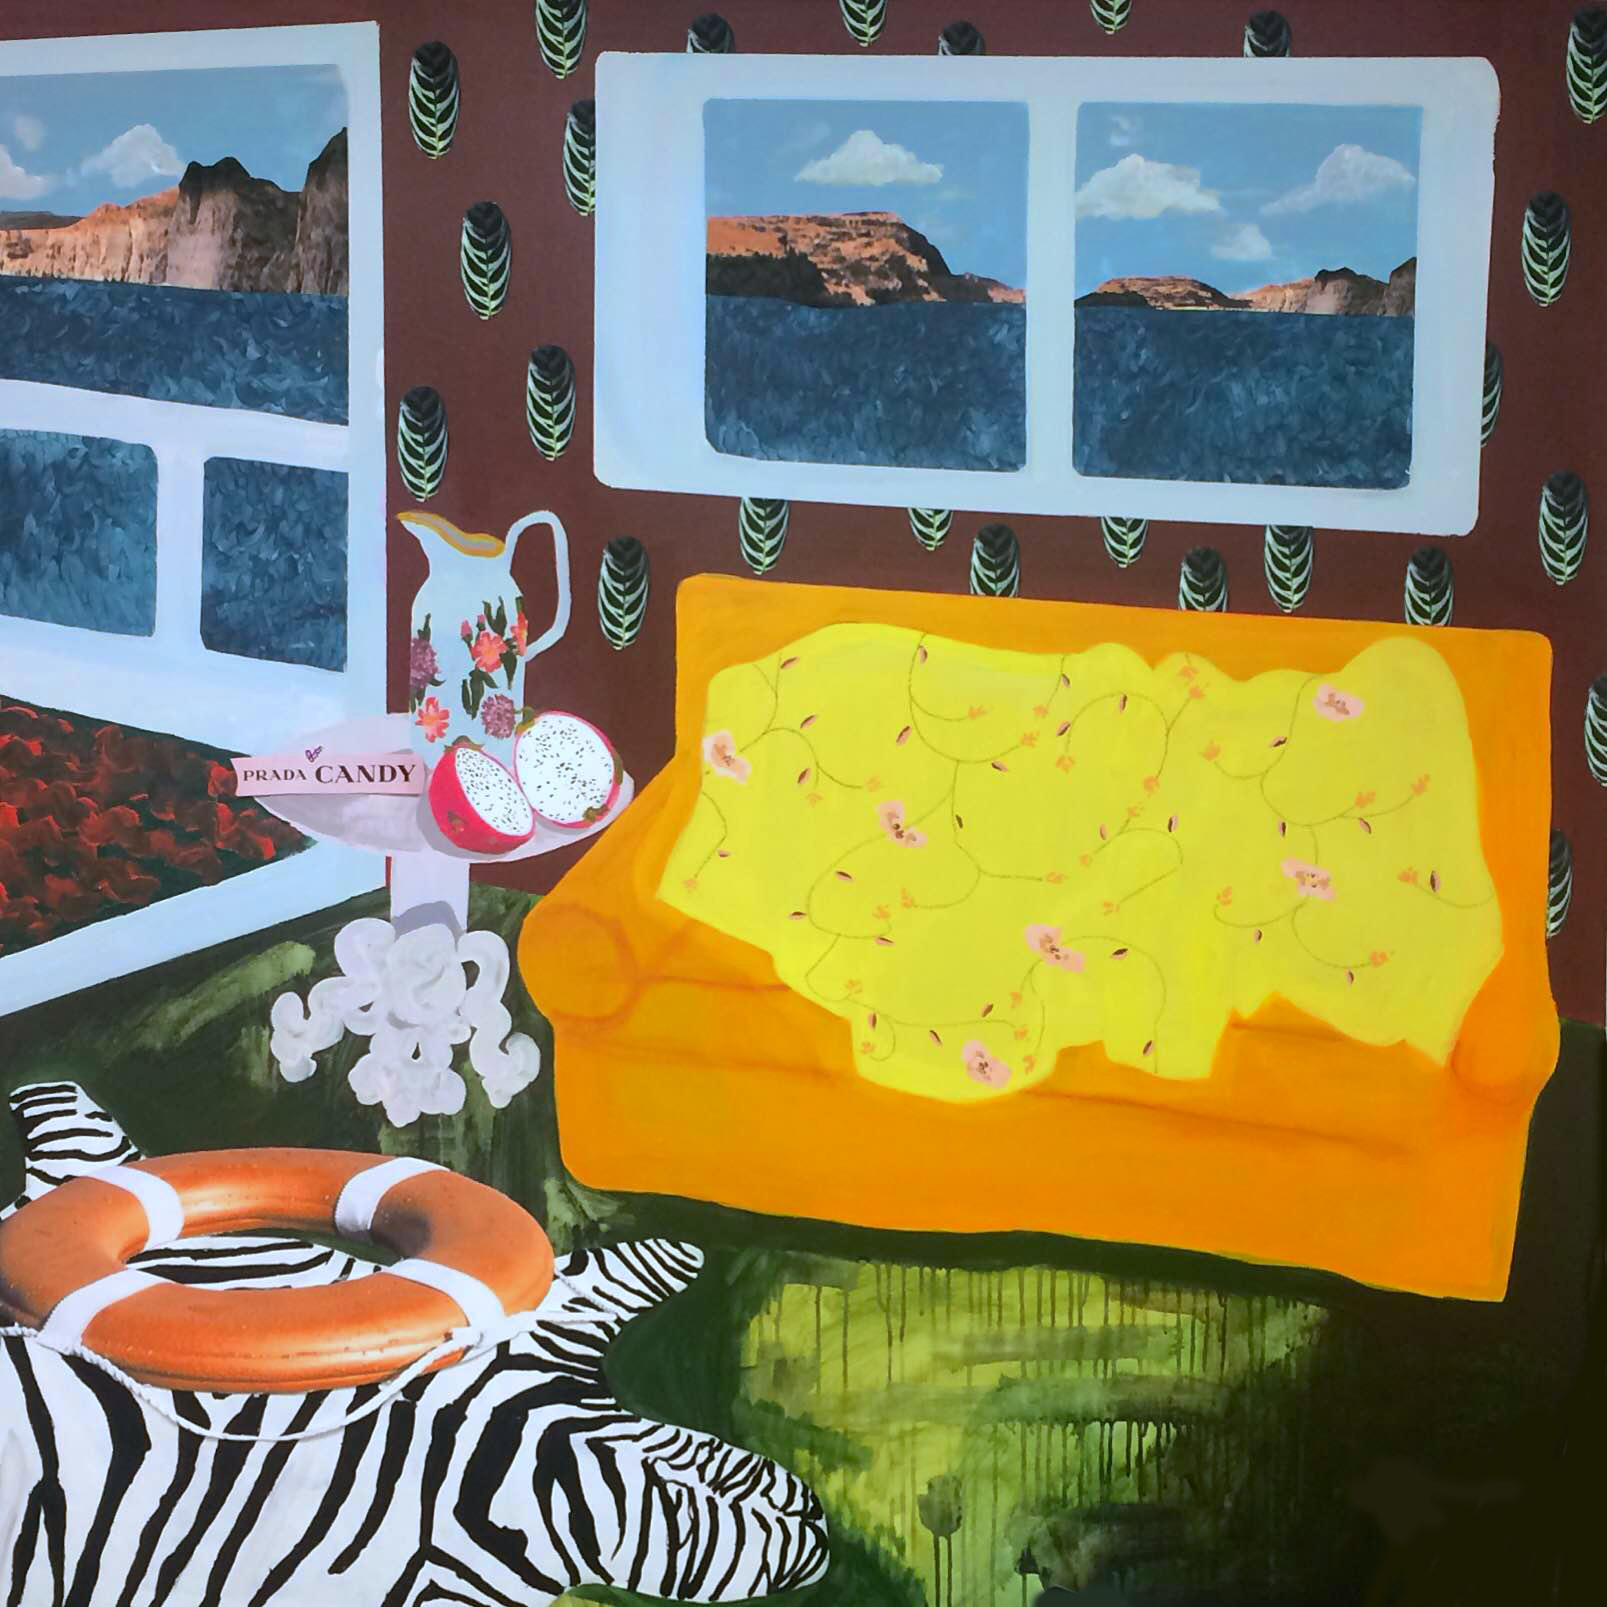 """Anderson and Matisse eat Prada on Lake Powell  / Acrylic and collage on canvas, 2016,60"""" x 60""""© 2014"""